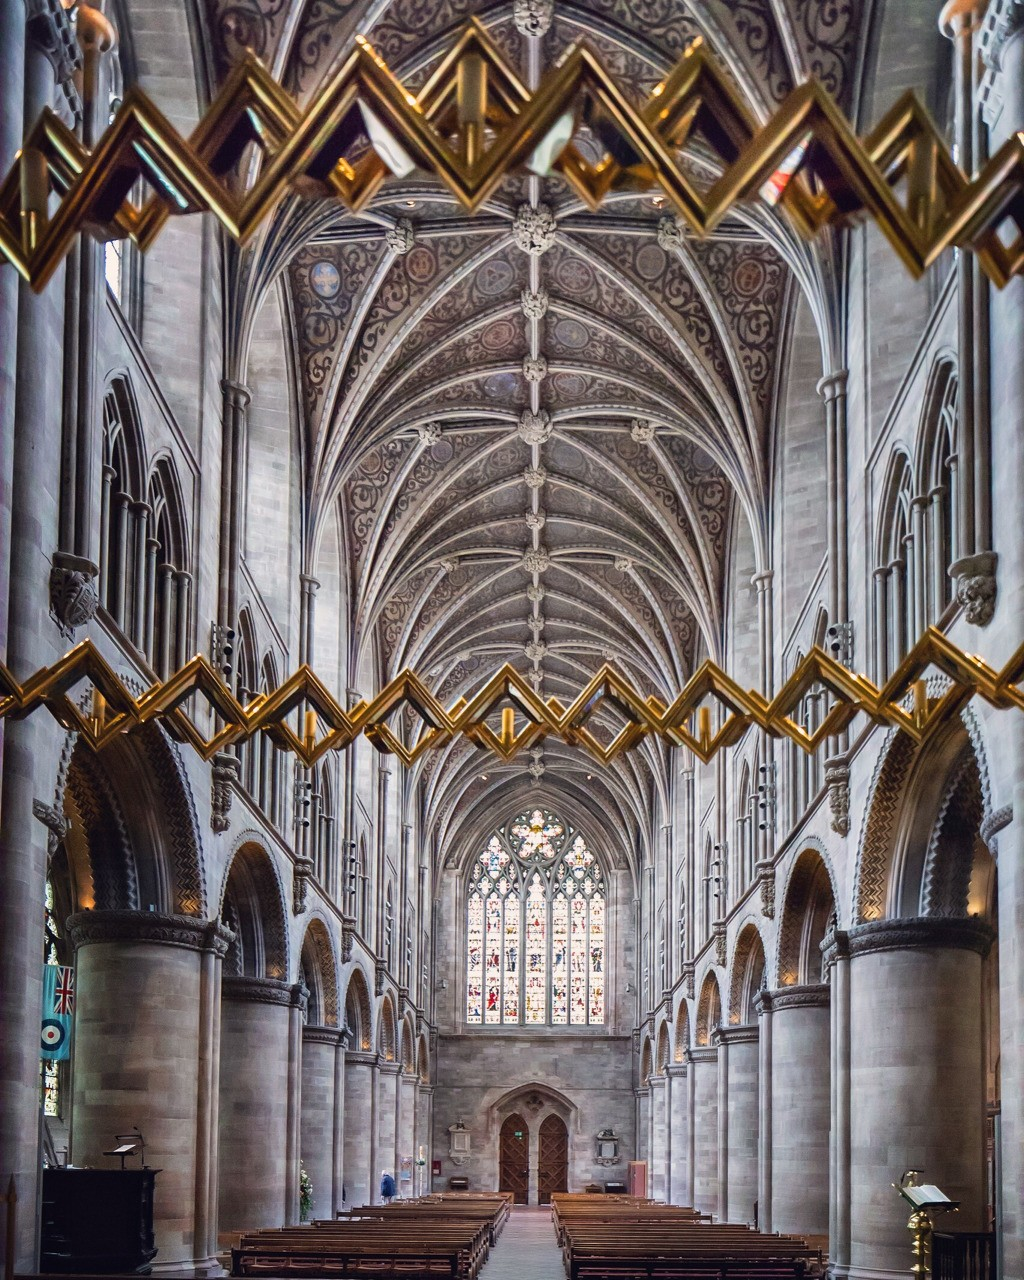 Hereford Cathedral UK - follow me on Insta: @fotofacade